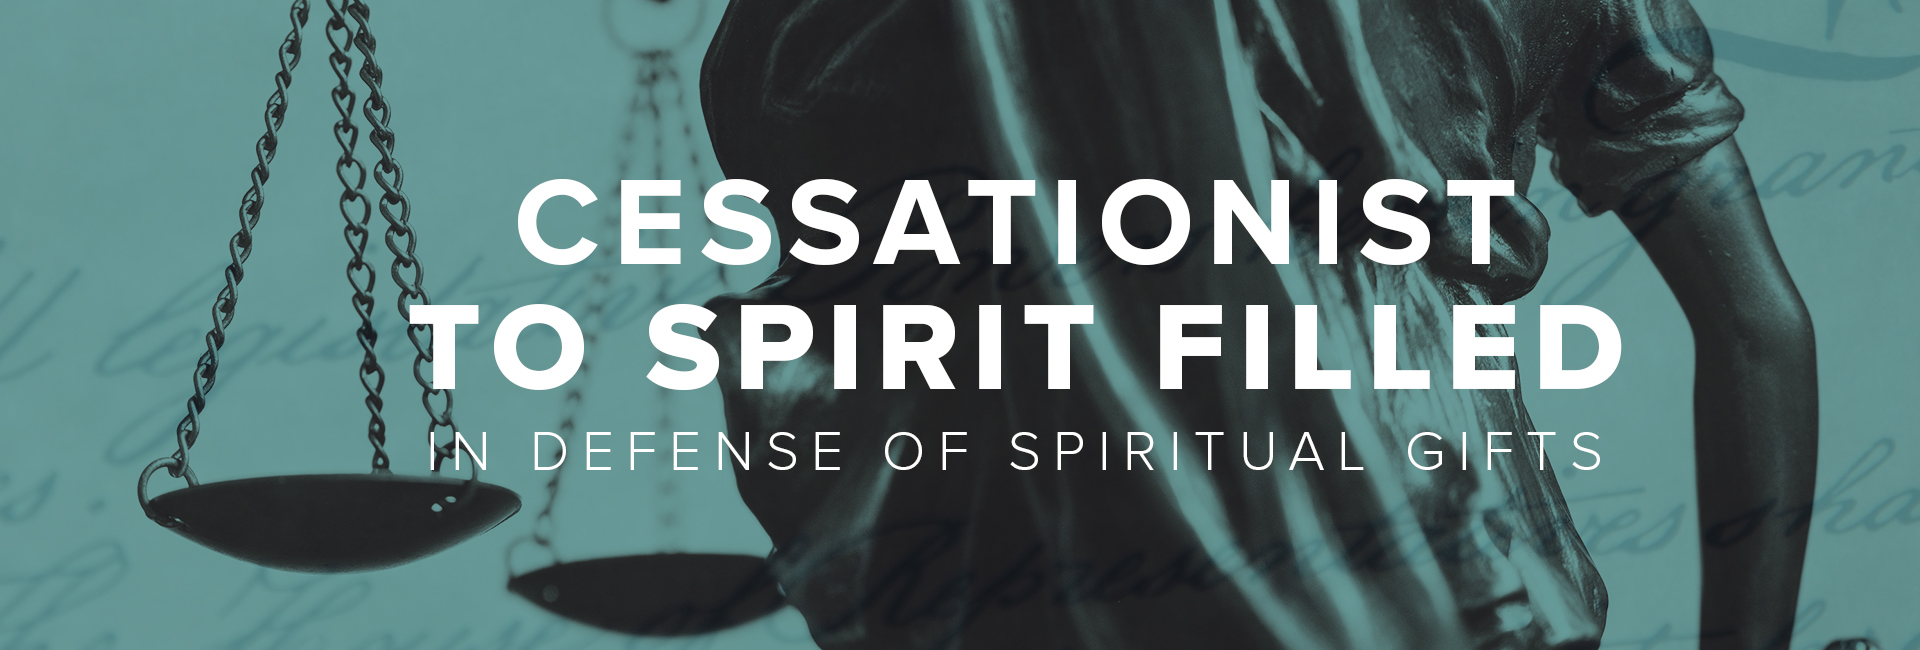 Cessationist to Spirit-Filled: In Defense of Spiritual Gifts